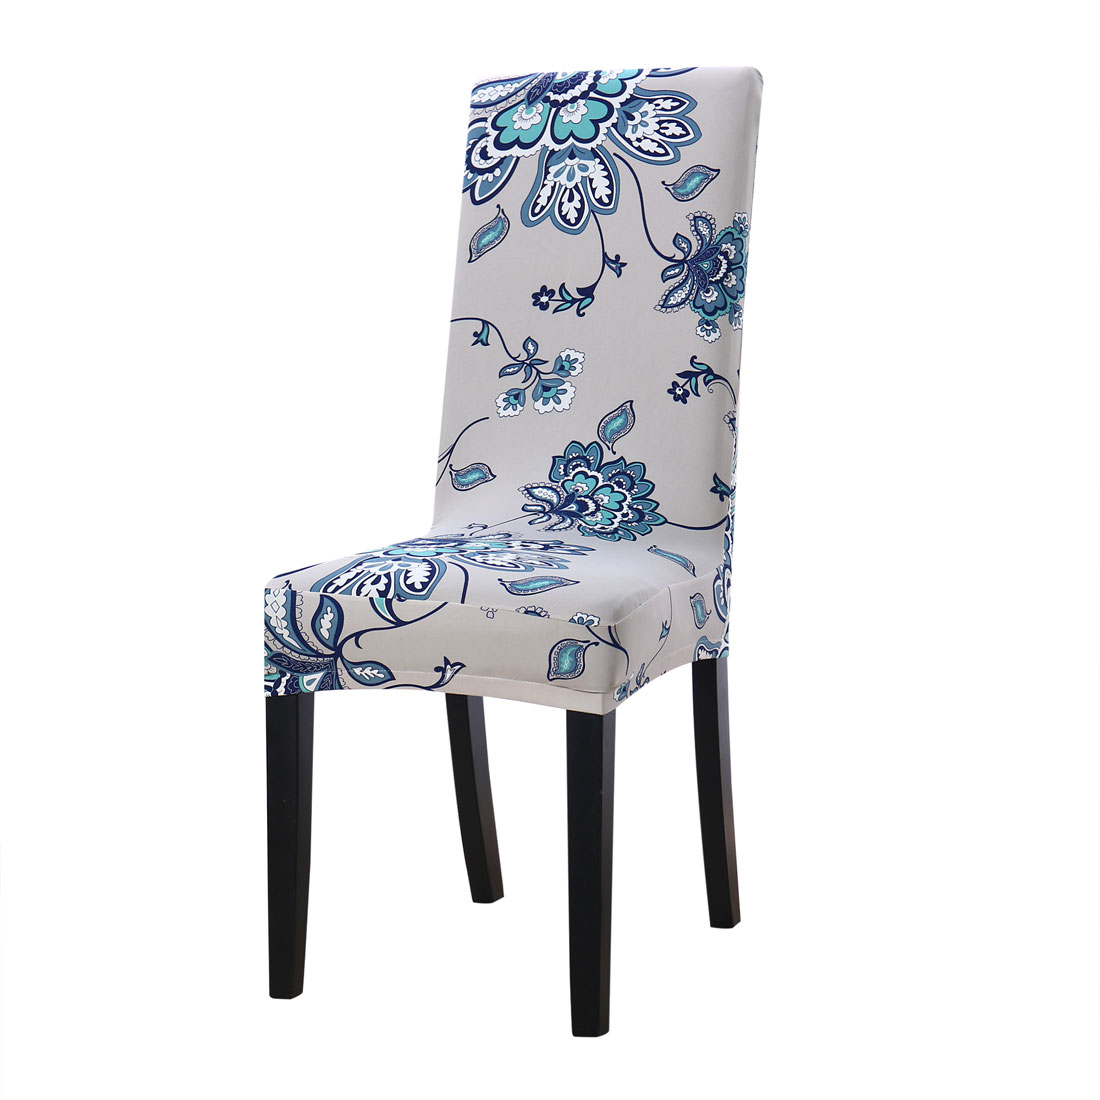 Unique Bargains Home Decor Washable Chair Covers Stretch Slipcovers Short Dining Room Stool  Cover #8